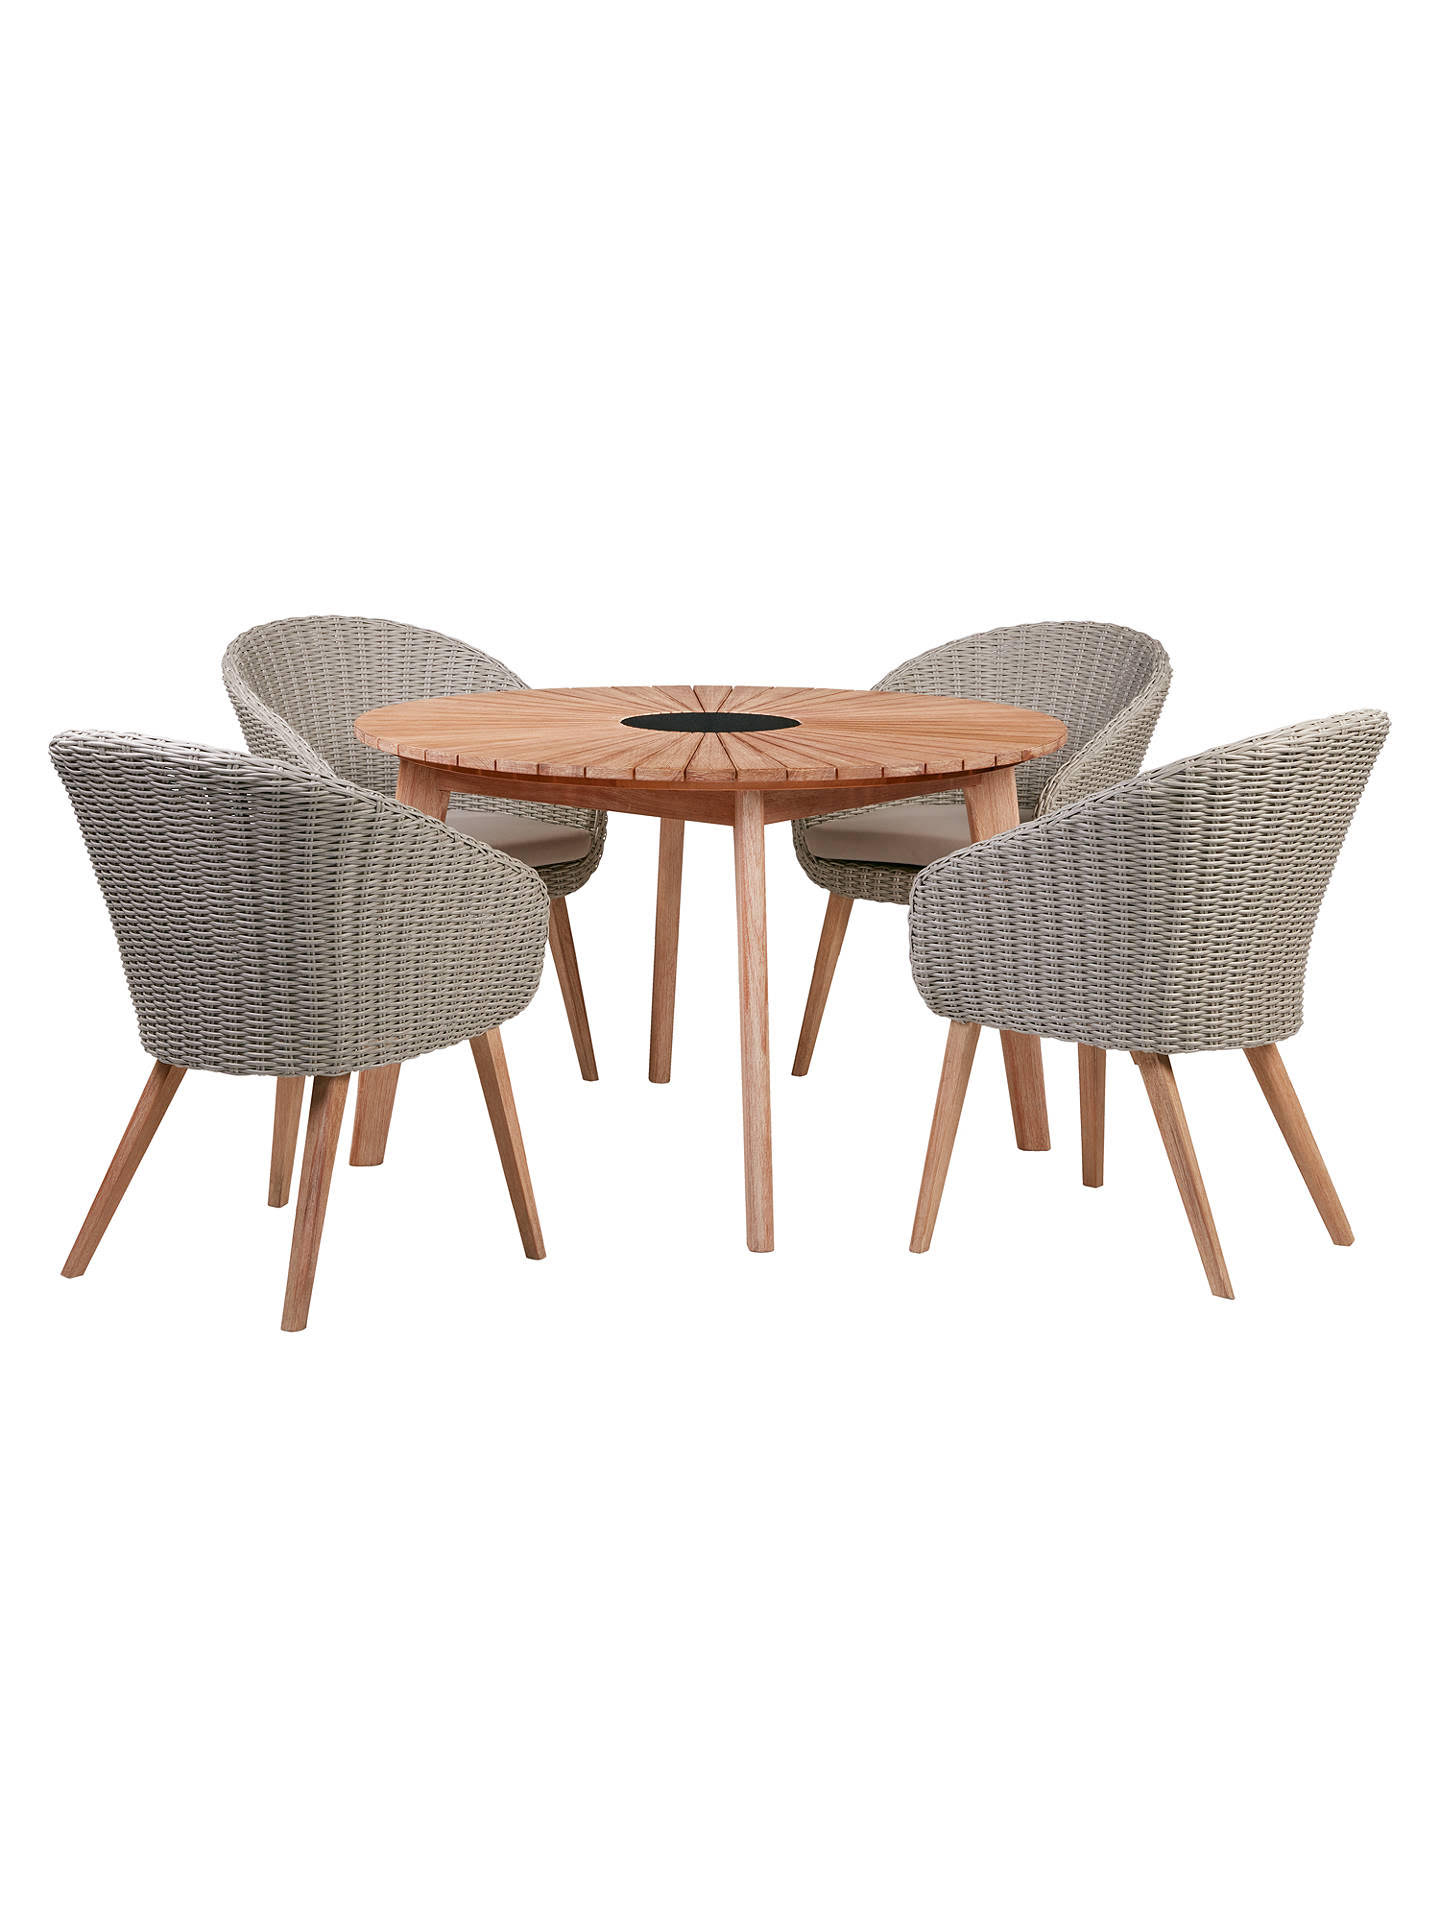 Lot 30508 - V Brand New To John Lewis Sol Four Seater Round Garden Table & Chairs ISP £999 (John Lewis) Stock